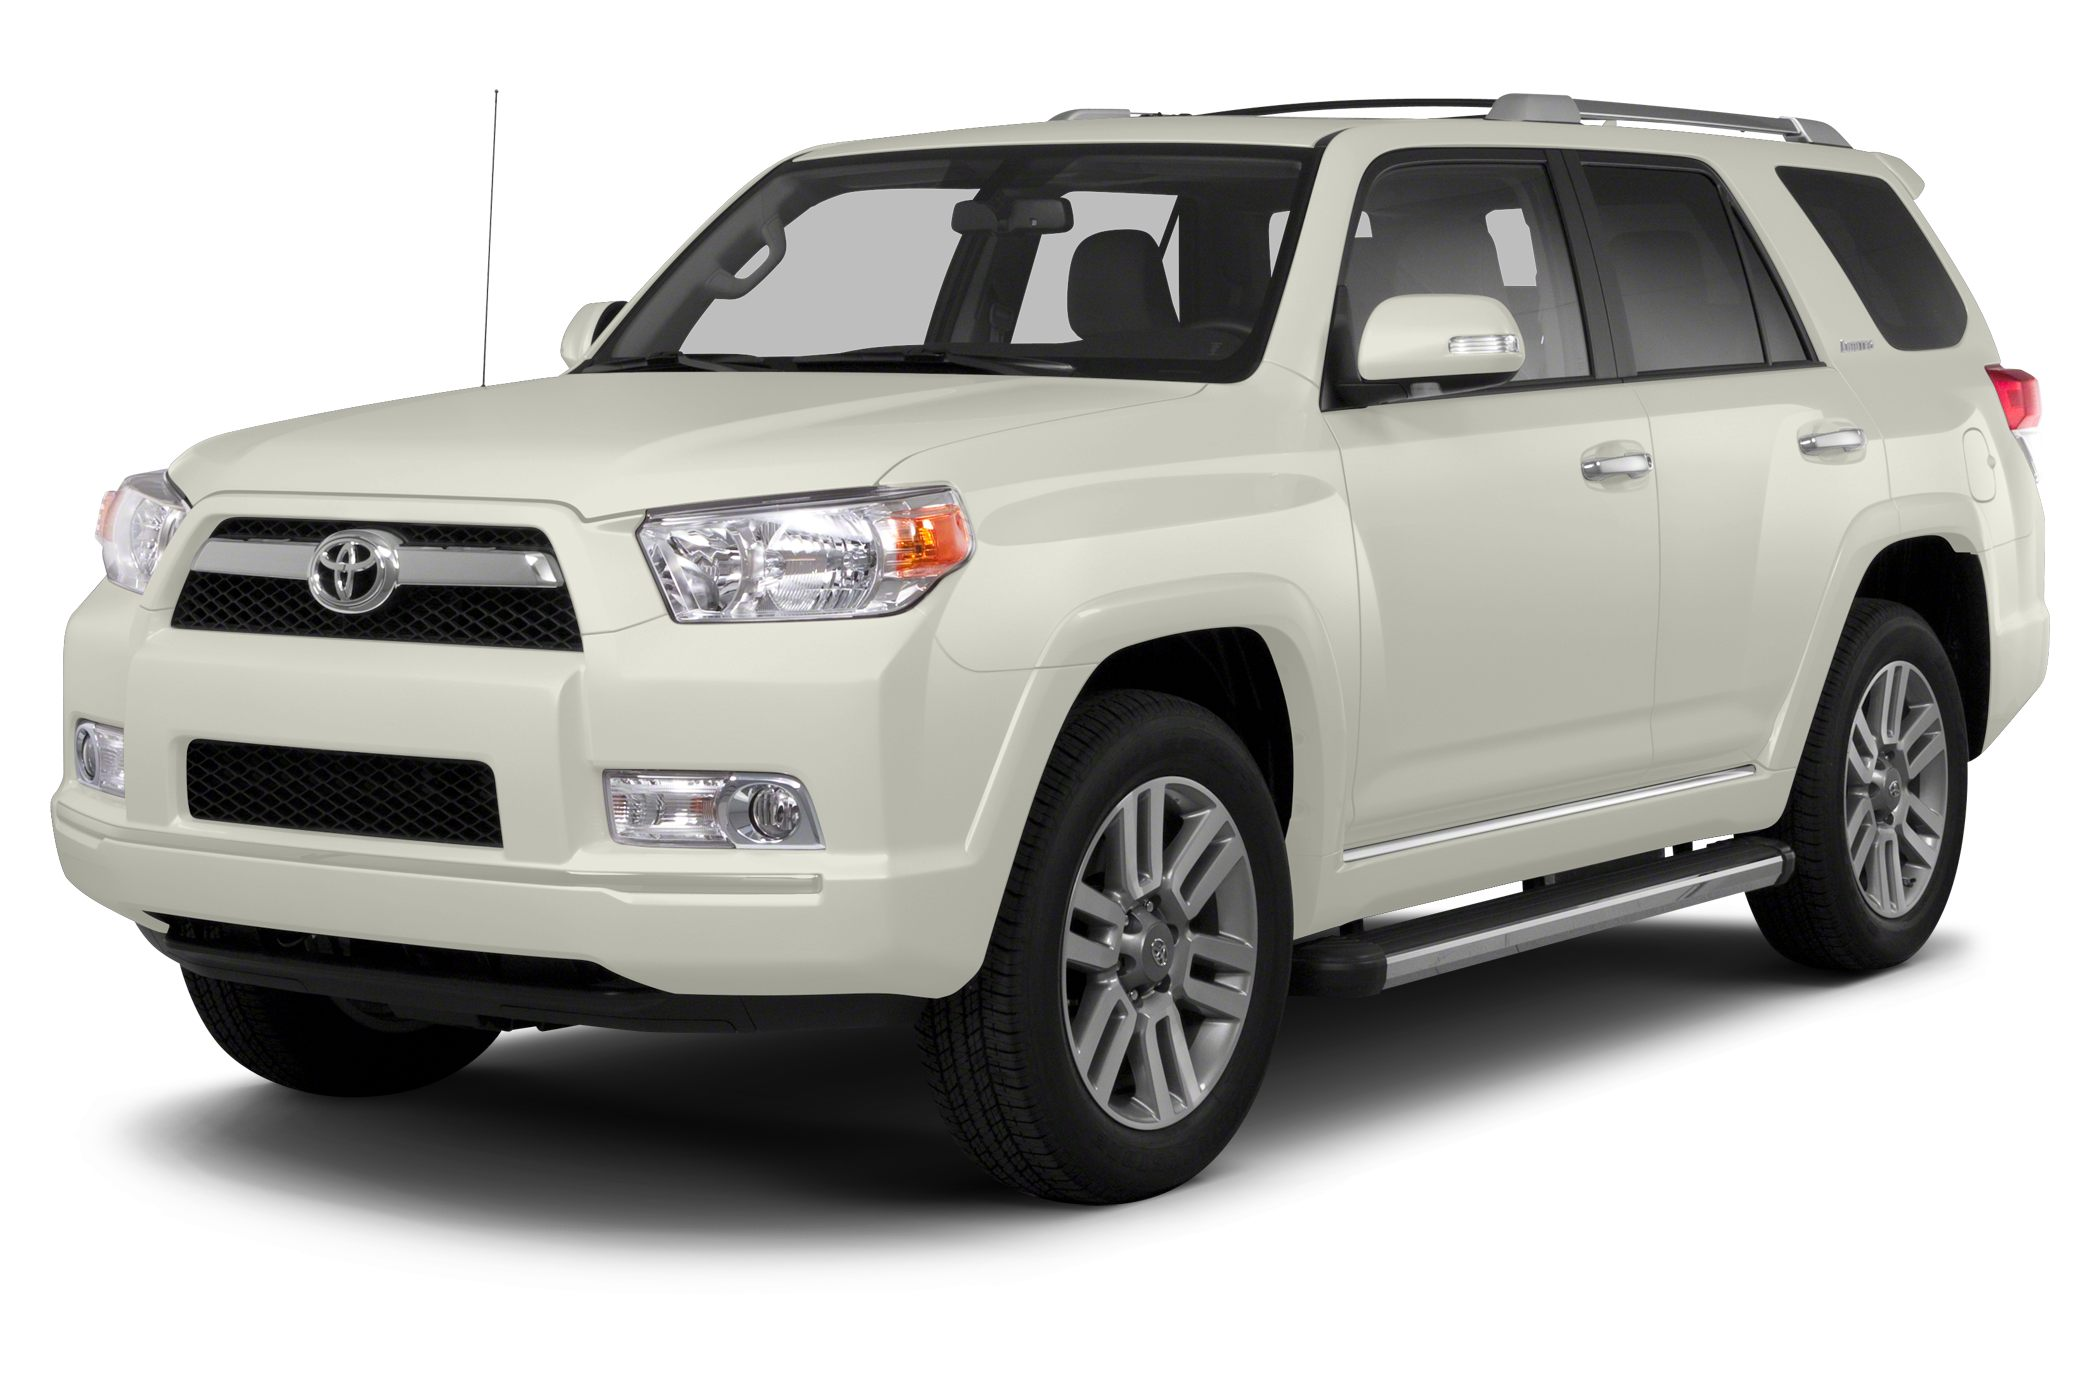 2013 Toyota 4Runner Limited SUV for sale in Mount Airy for $38,900 with 31,996 miles.